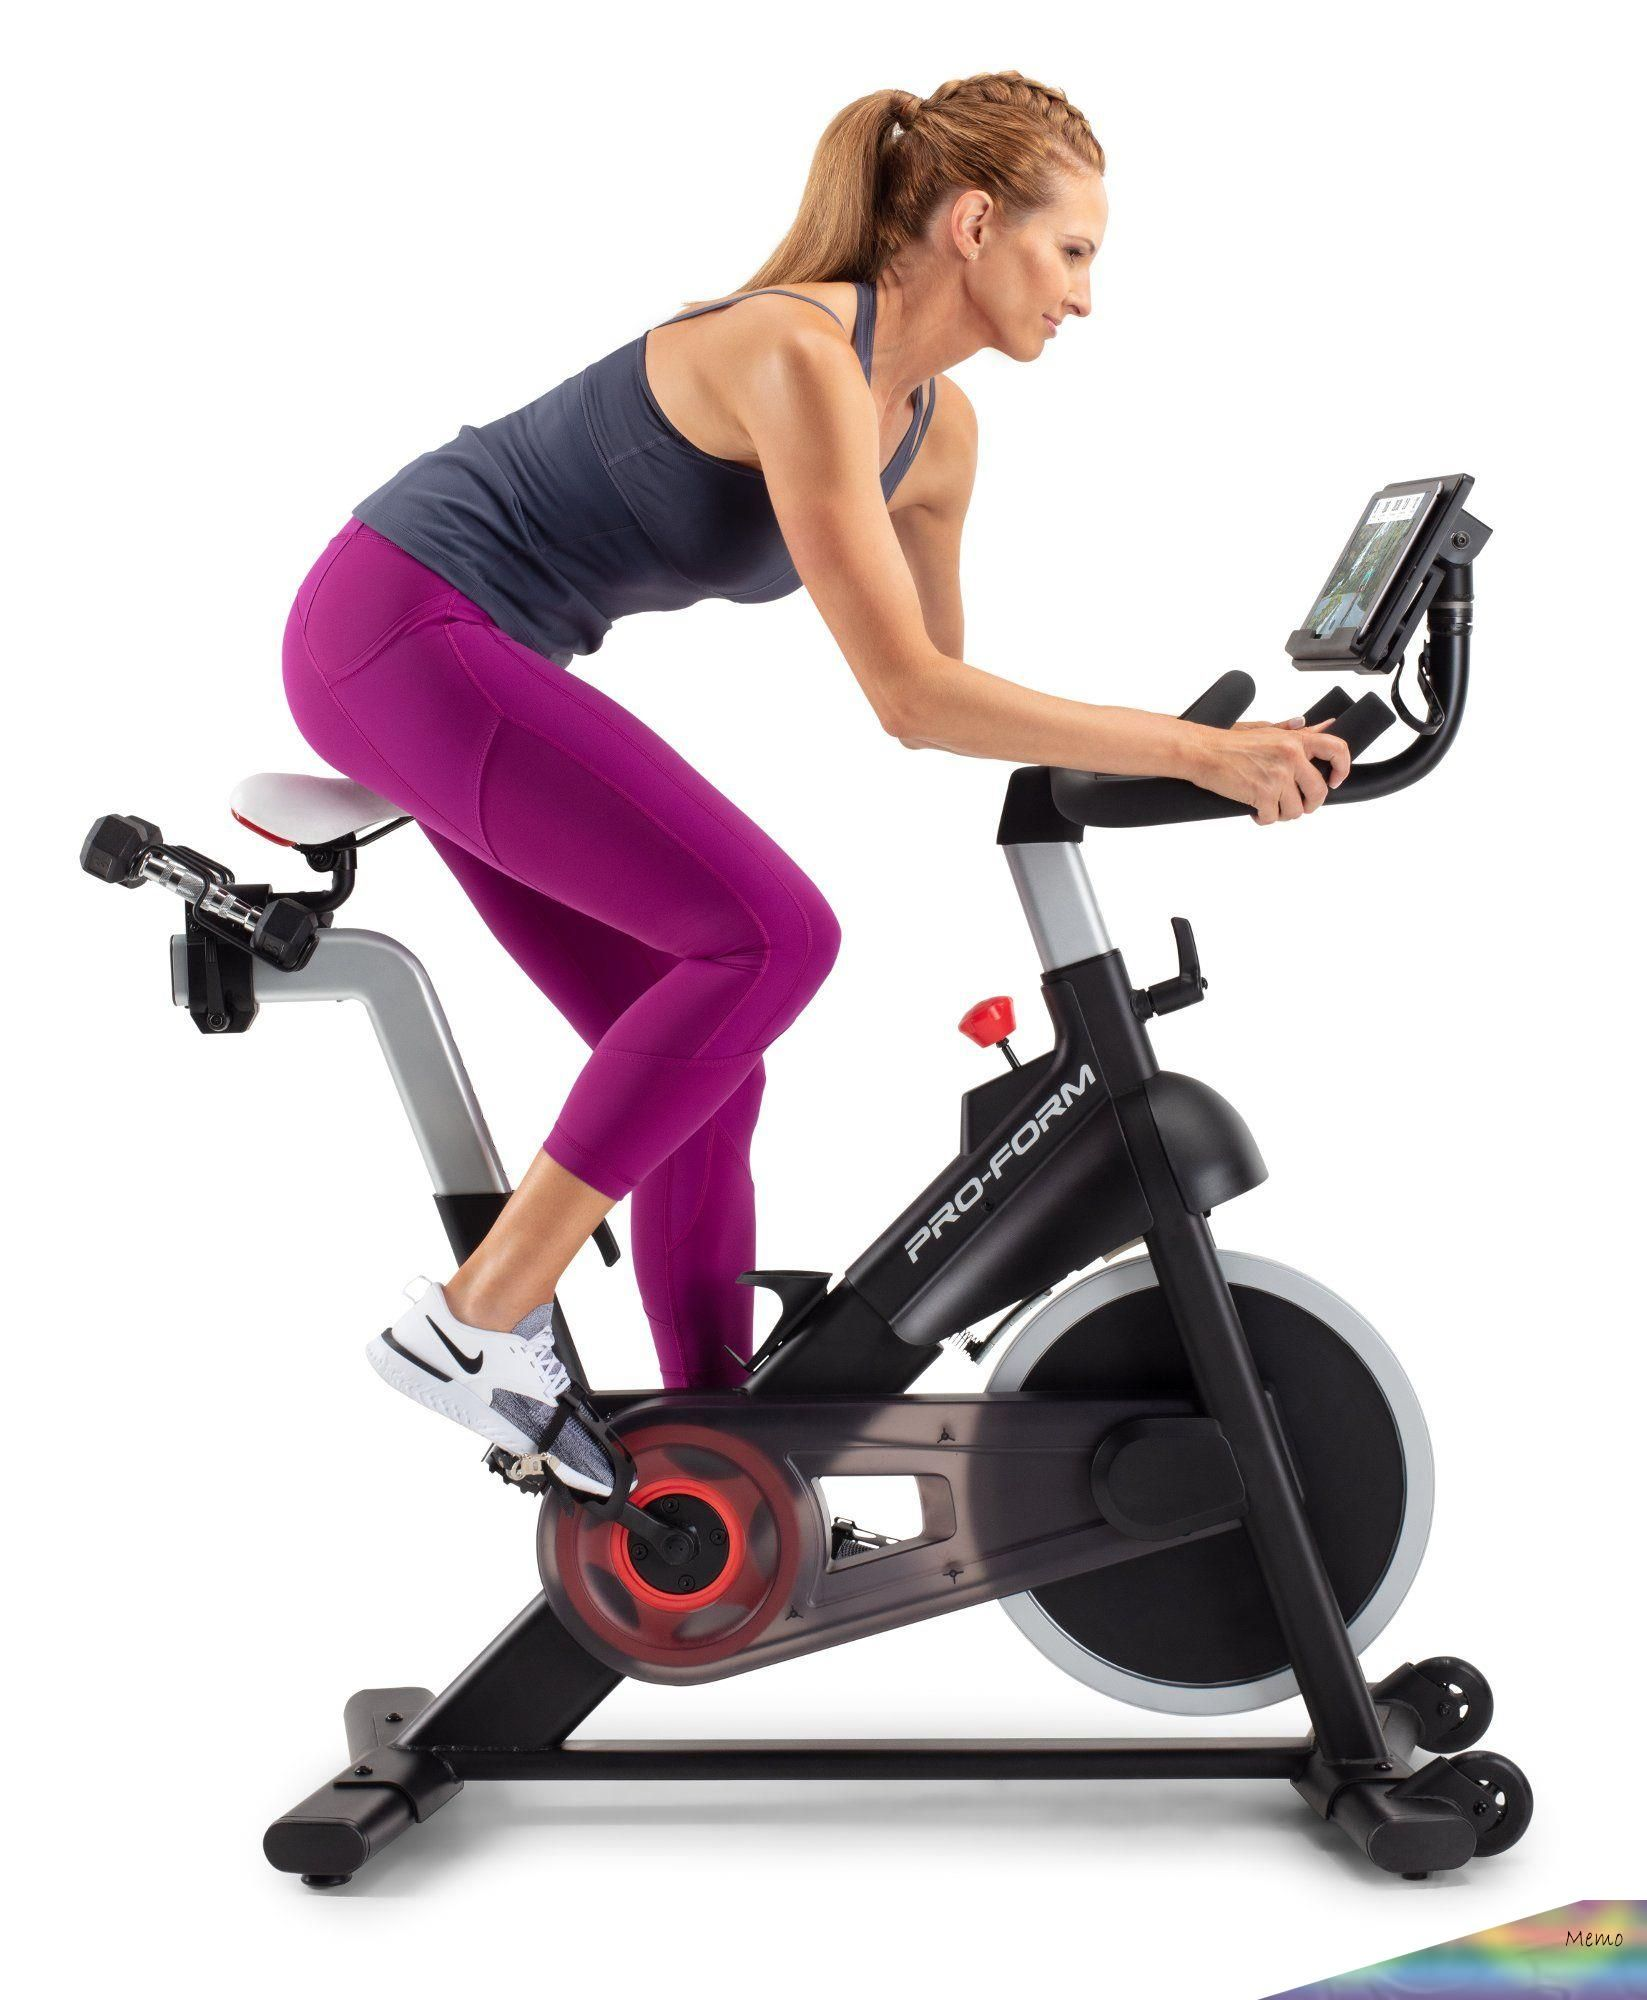 This Pin Was Discovered By Rc Willey Discover And Save Your Own Pins On Pinterest Biking Workout Home Exercise Bike At Home Workouts